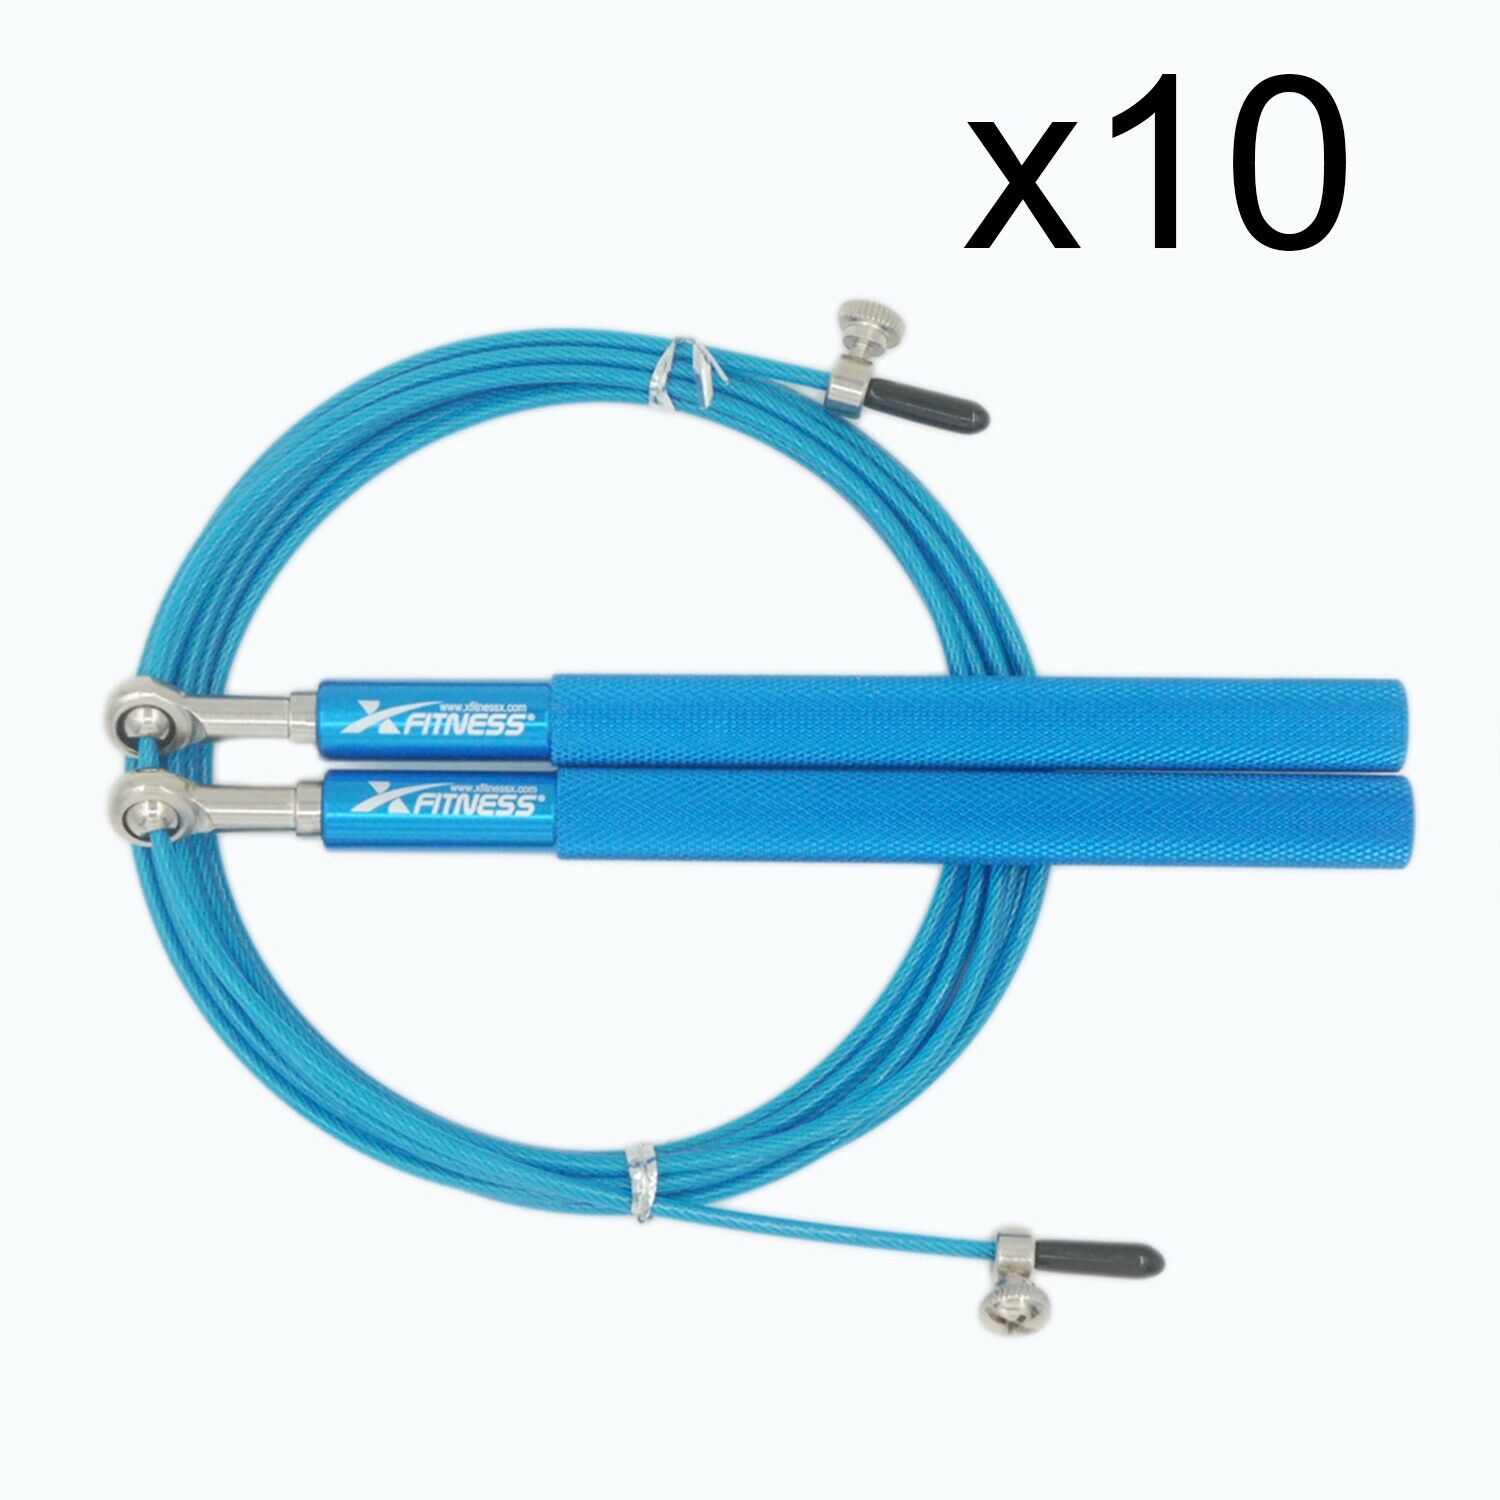 Lot of 10 blueE Ball Bearing Speed Wire Jump Rope for Cardio Crossfit Boxing Gym